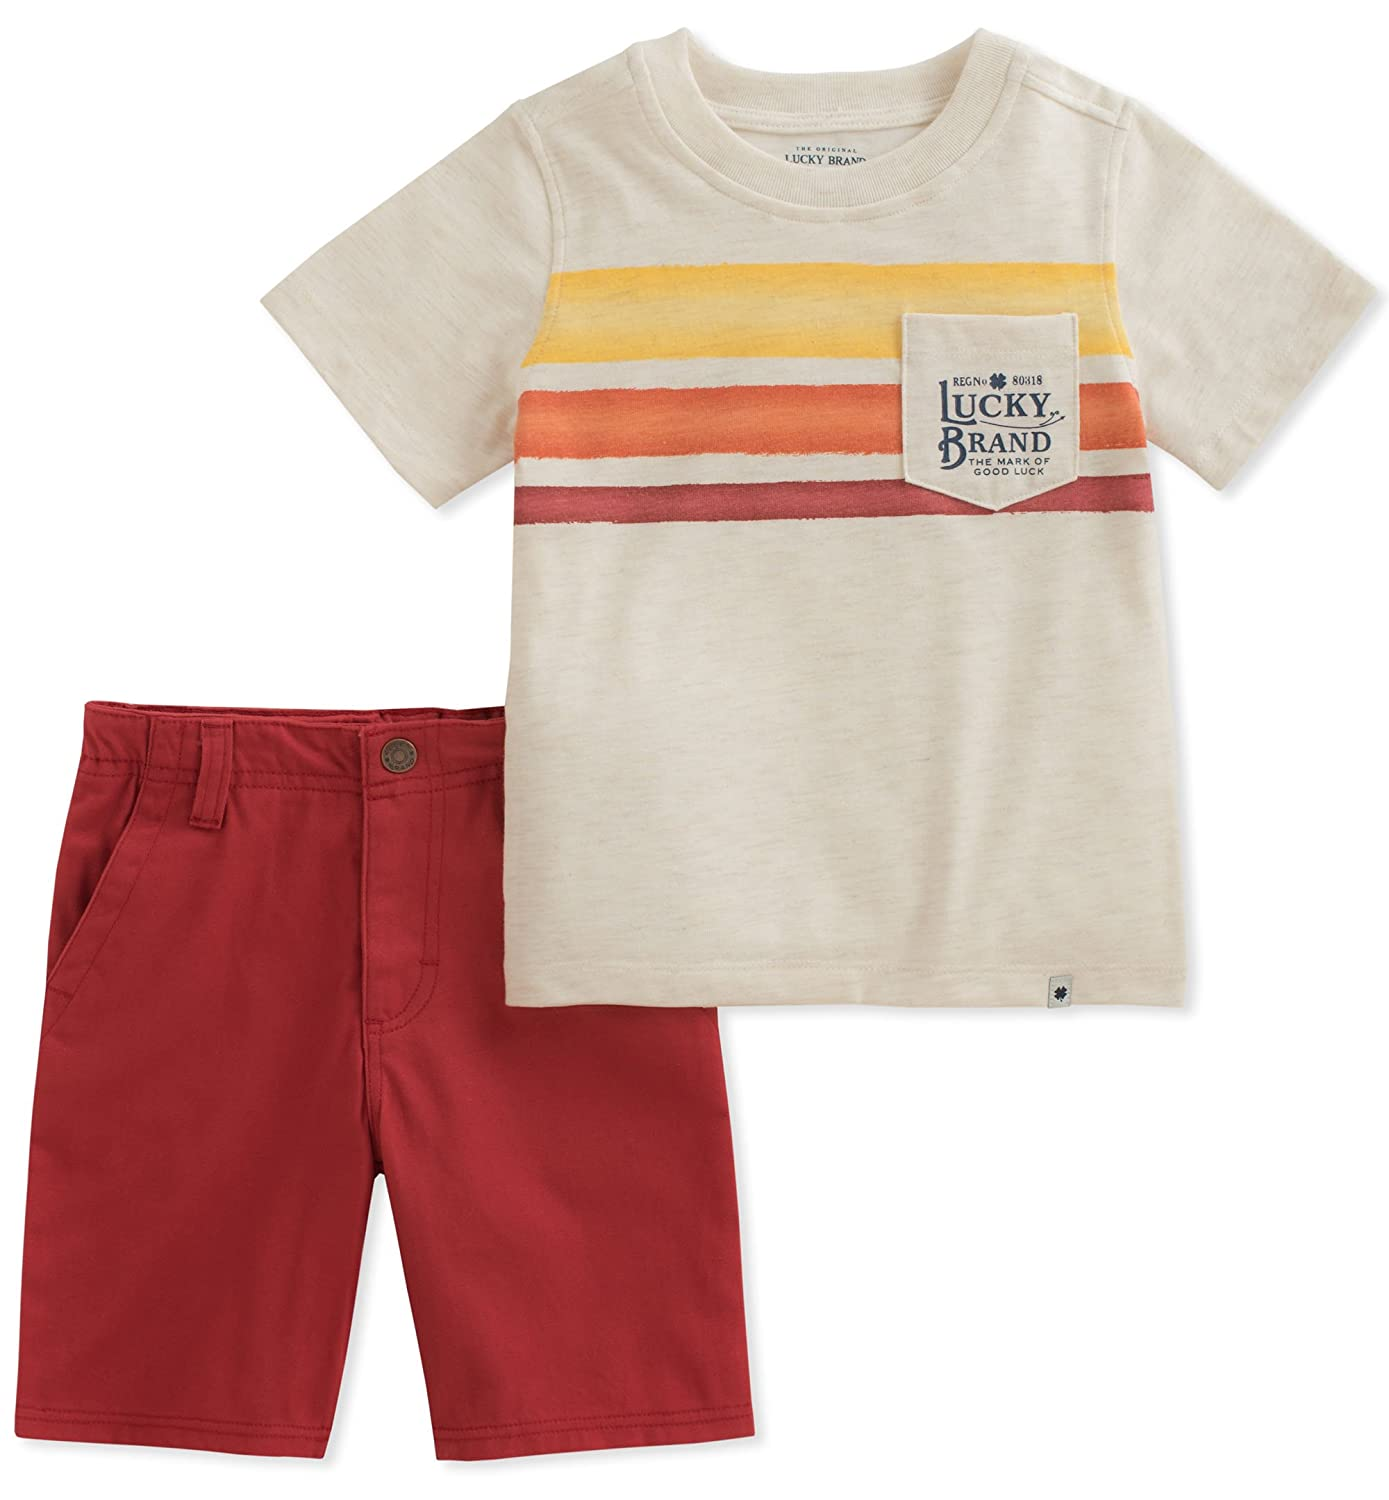 Lucky Brand Boys' Shorts Set